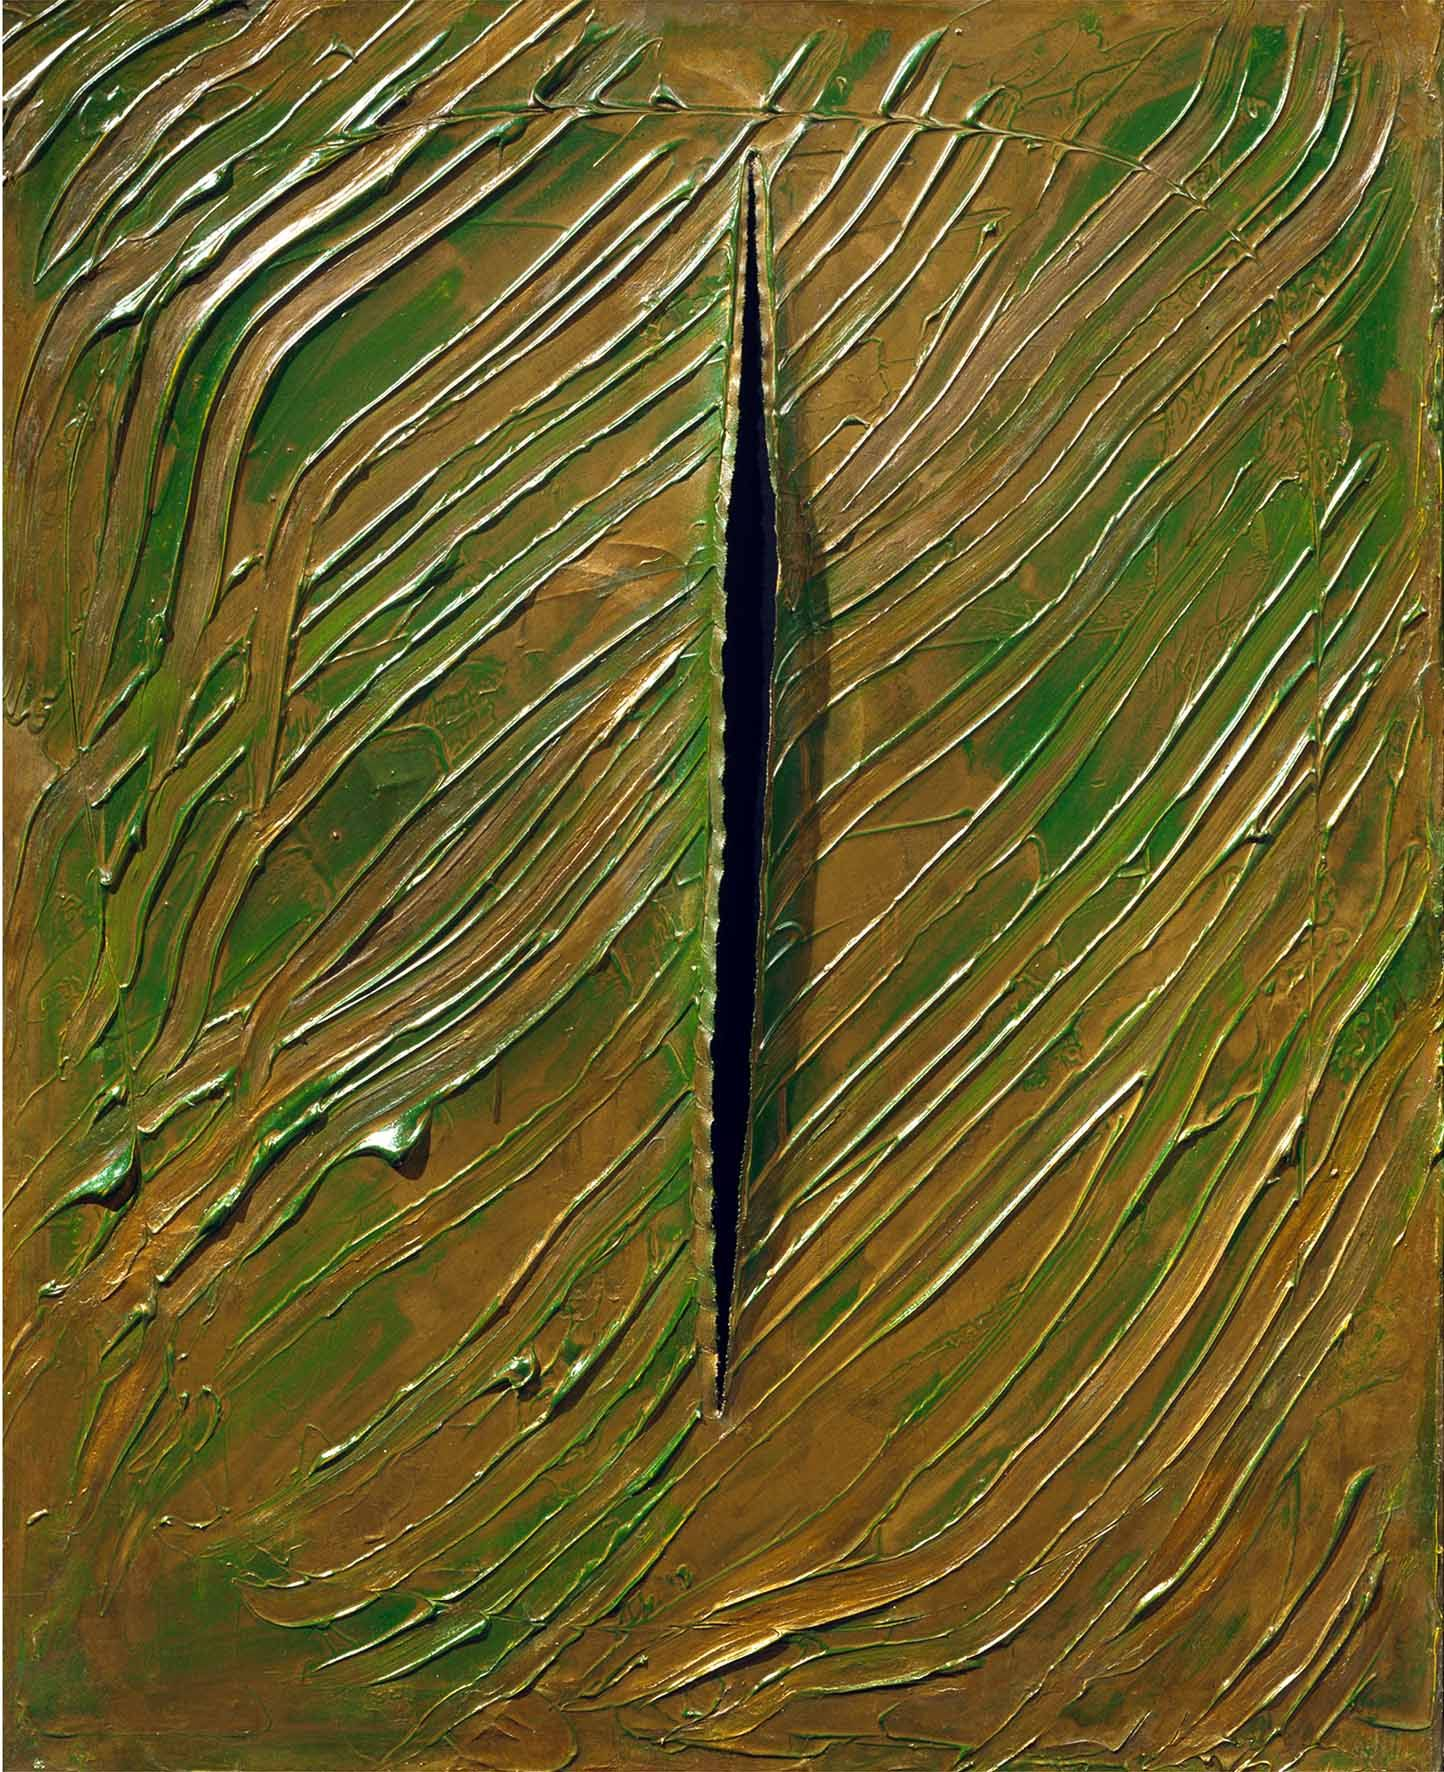 green and yellow painting by lucio fontana with slit